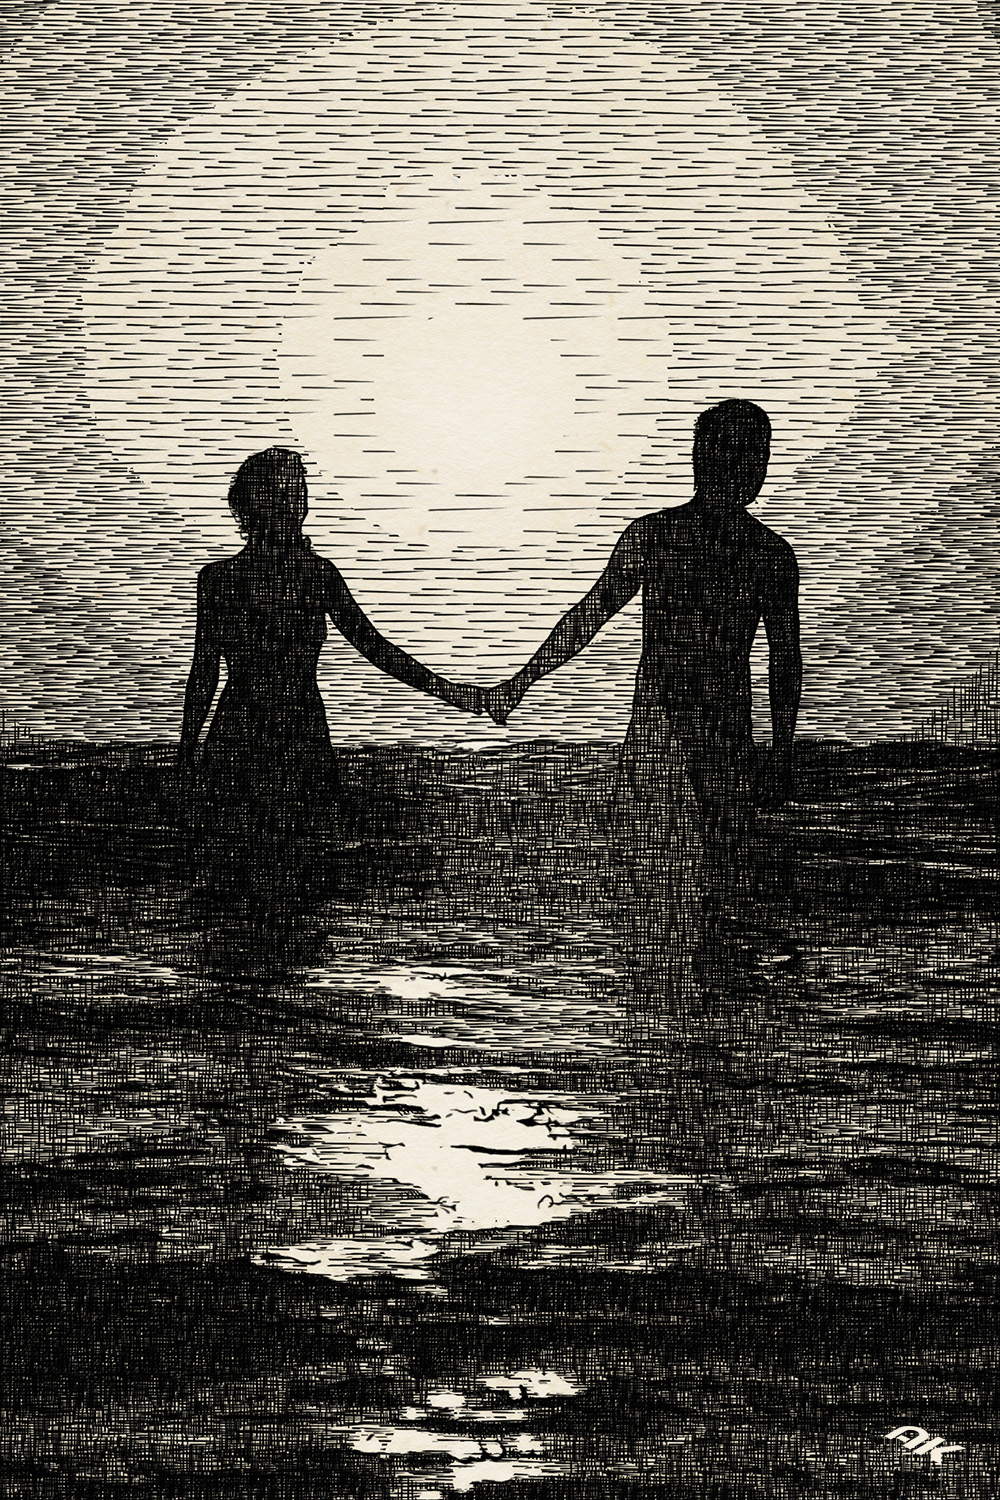 Silhouettes-Engraving-3-copyright-andrew-knutt